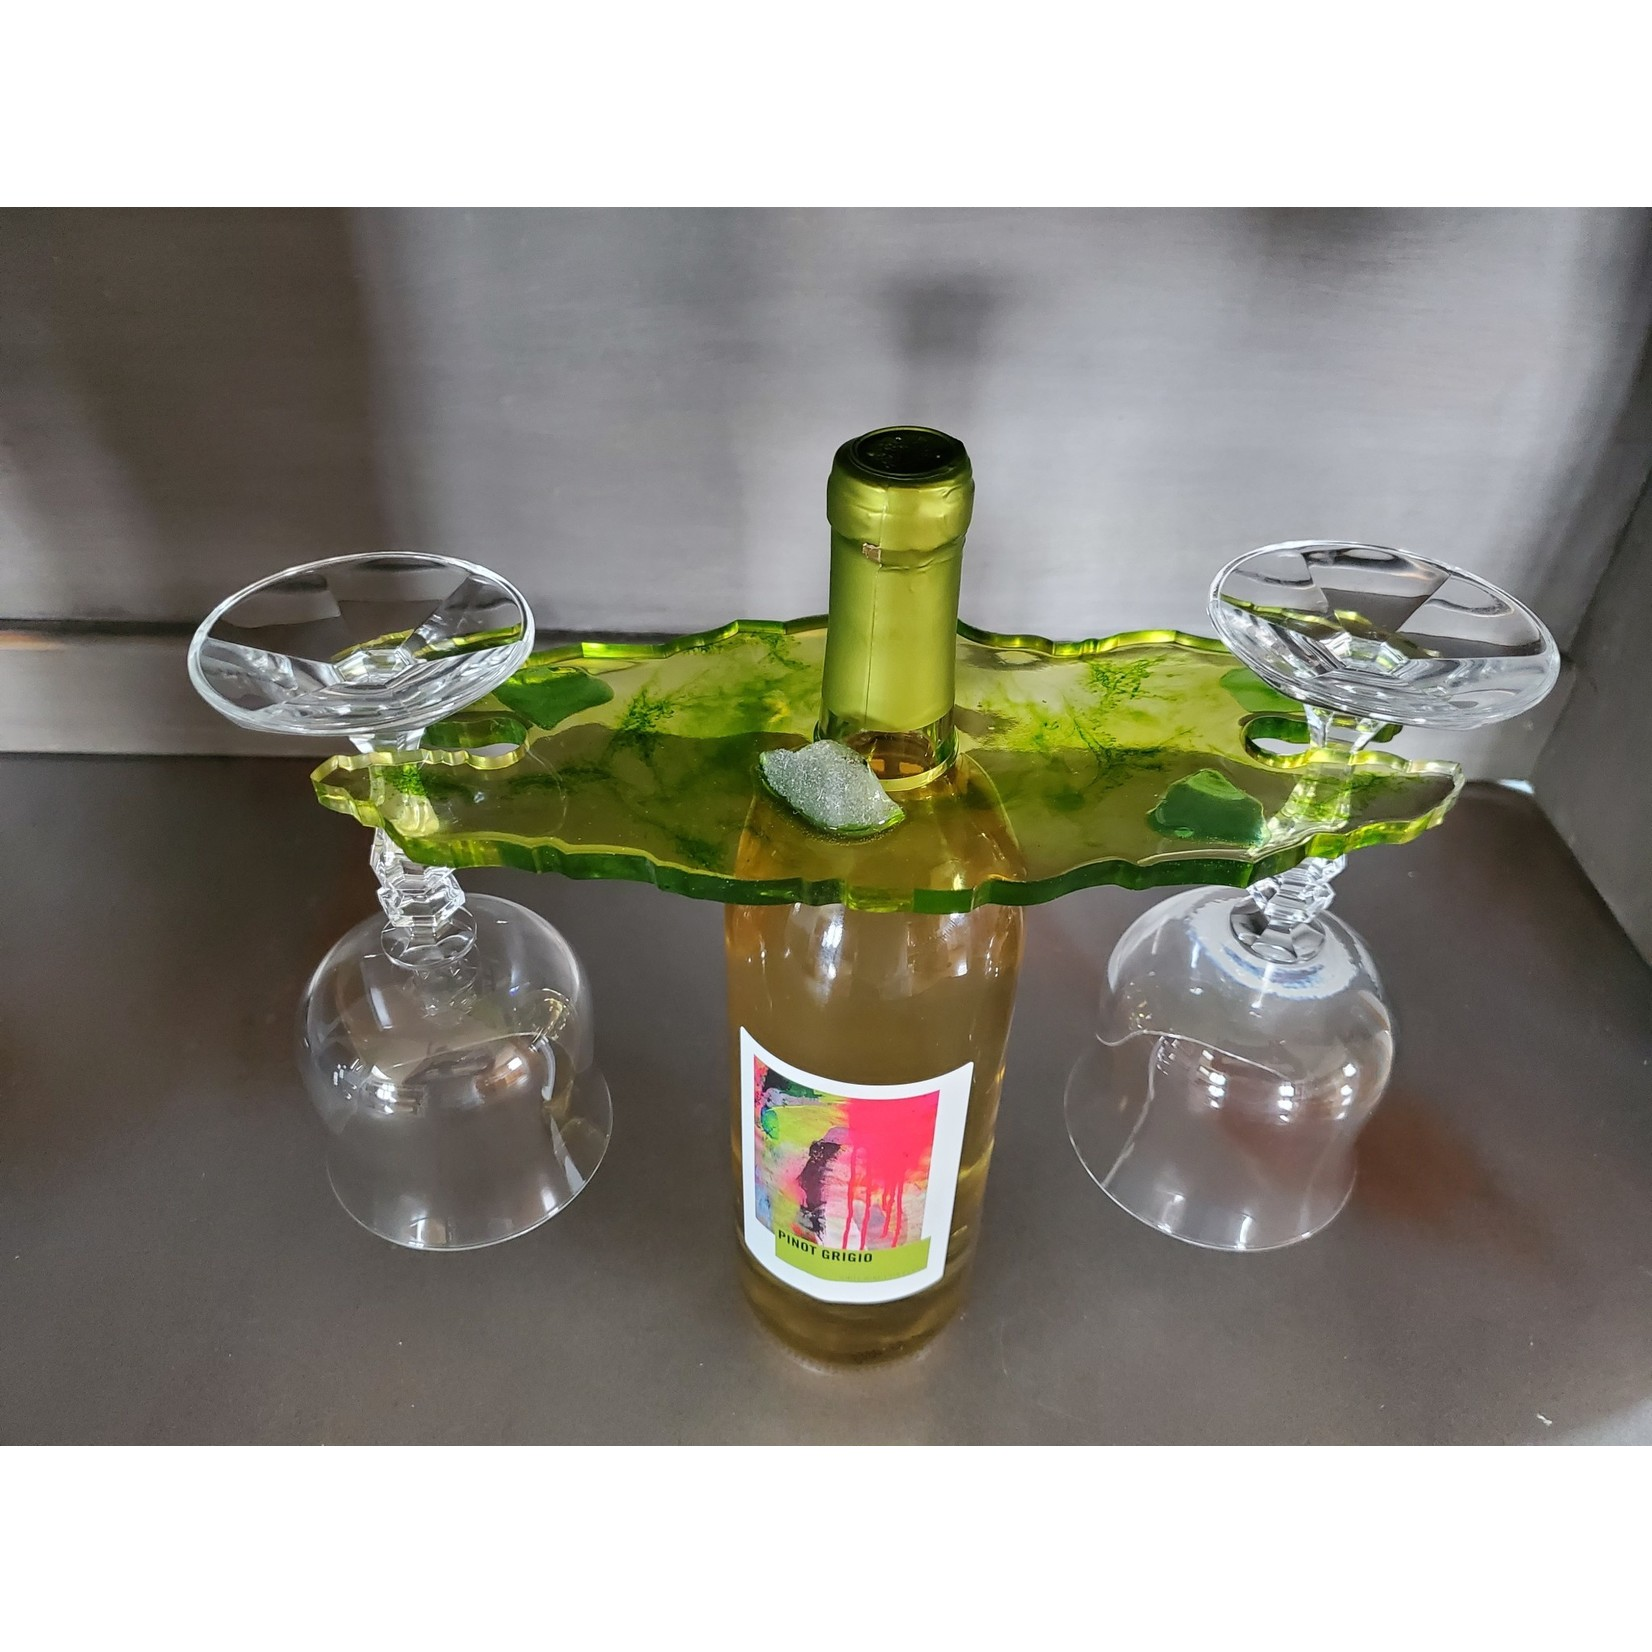 East Coast Sirens Wine Butler in Soft Greens with Beach Glass